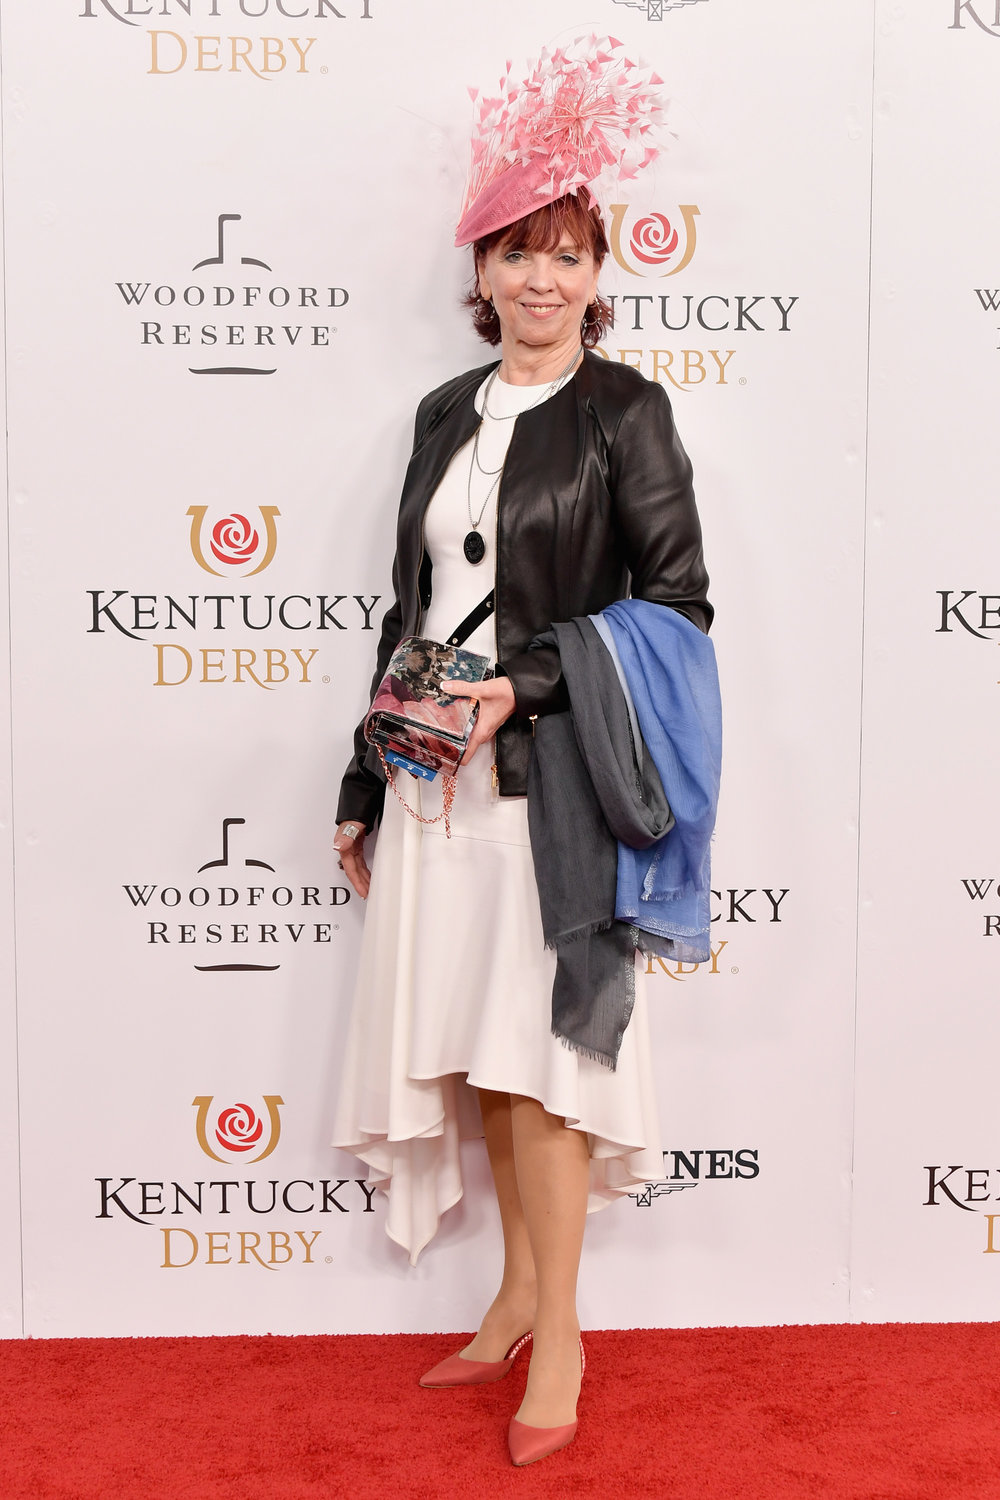 LOUISVILLE, KY - MAY 05:  Author Nora Roberts attends Kentucky Derby 144 on May 5, 2018 in Louisville, Kentucky.  (Photo by Michael Loccisano/Getty Images for Churchill Downs) *** Local Caption *** Nora Roberts